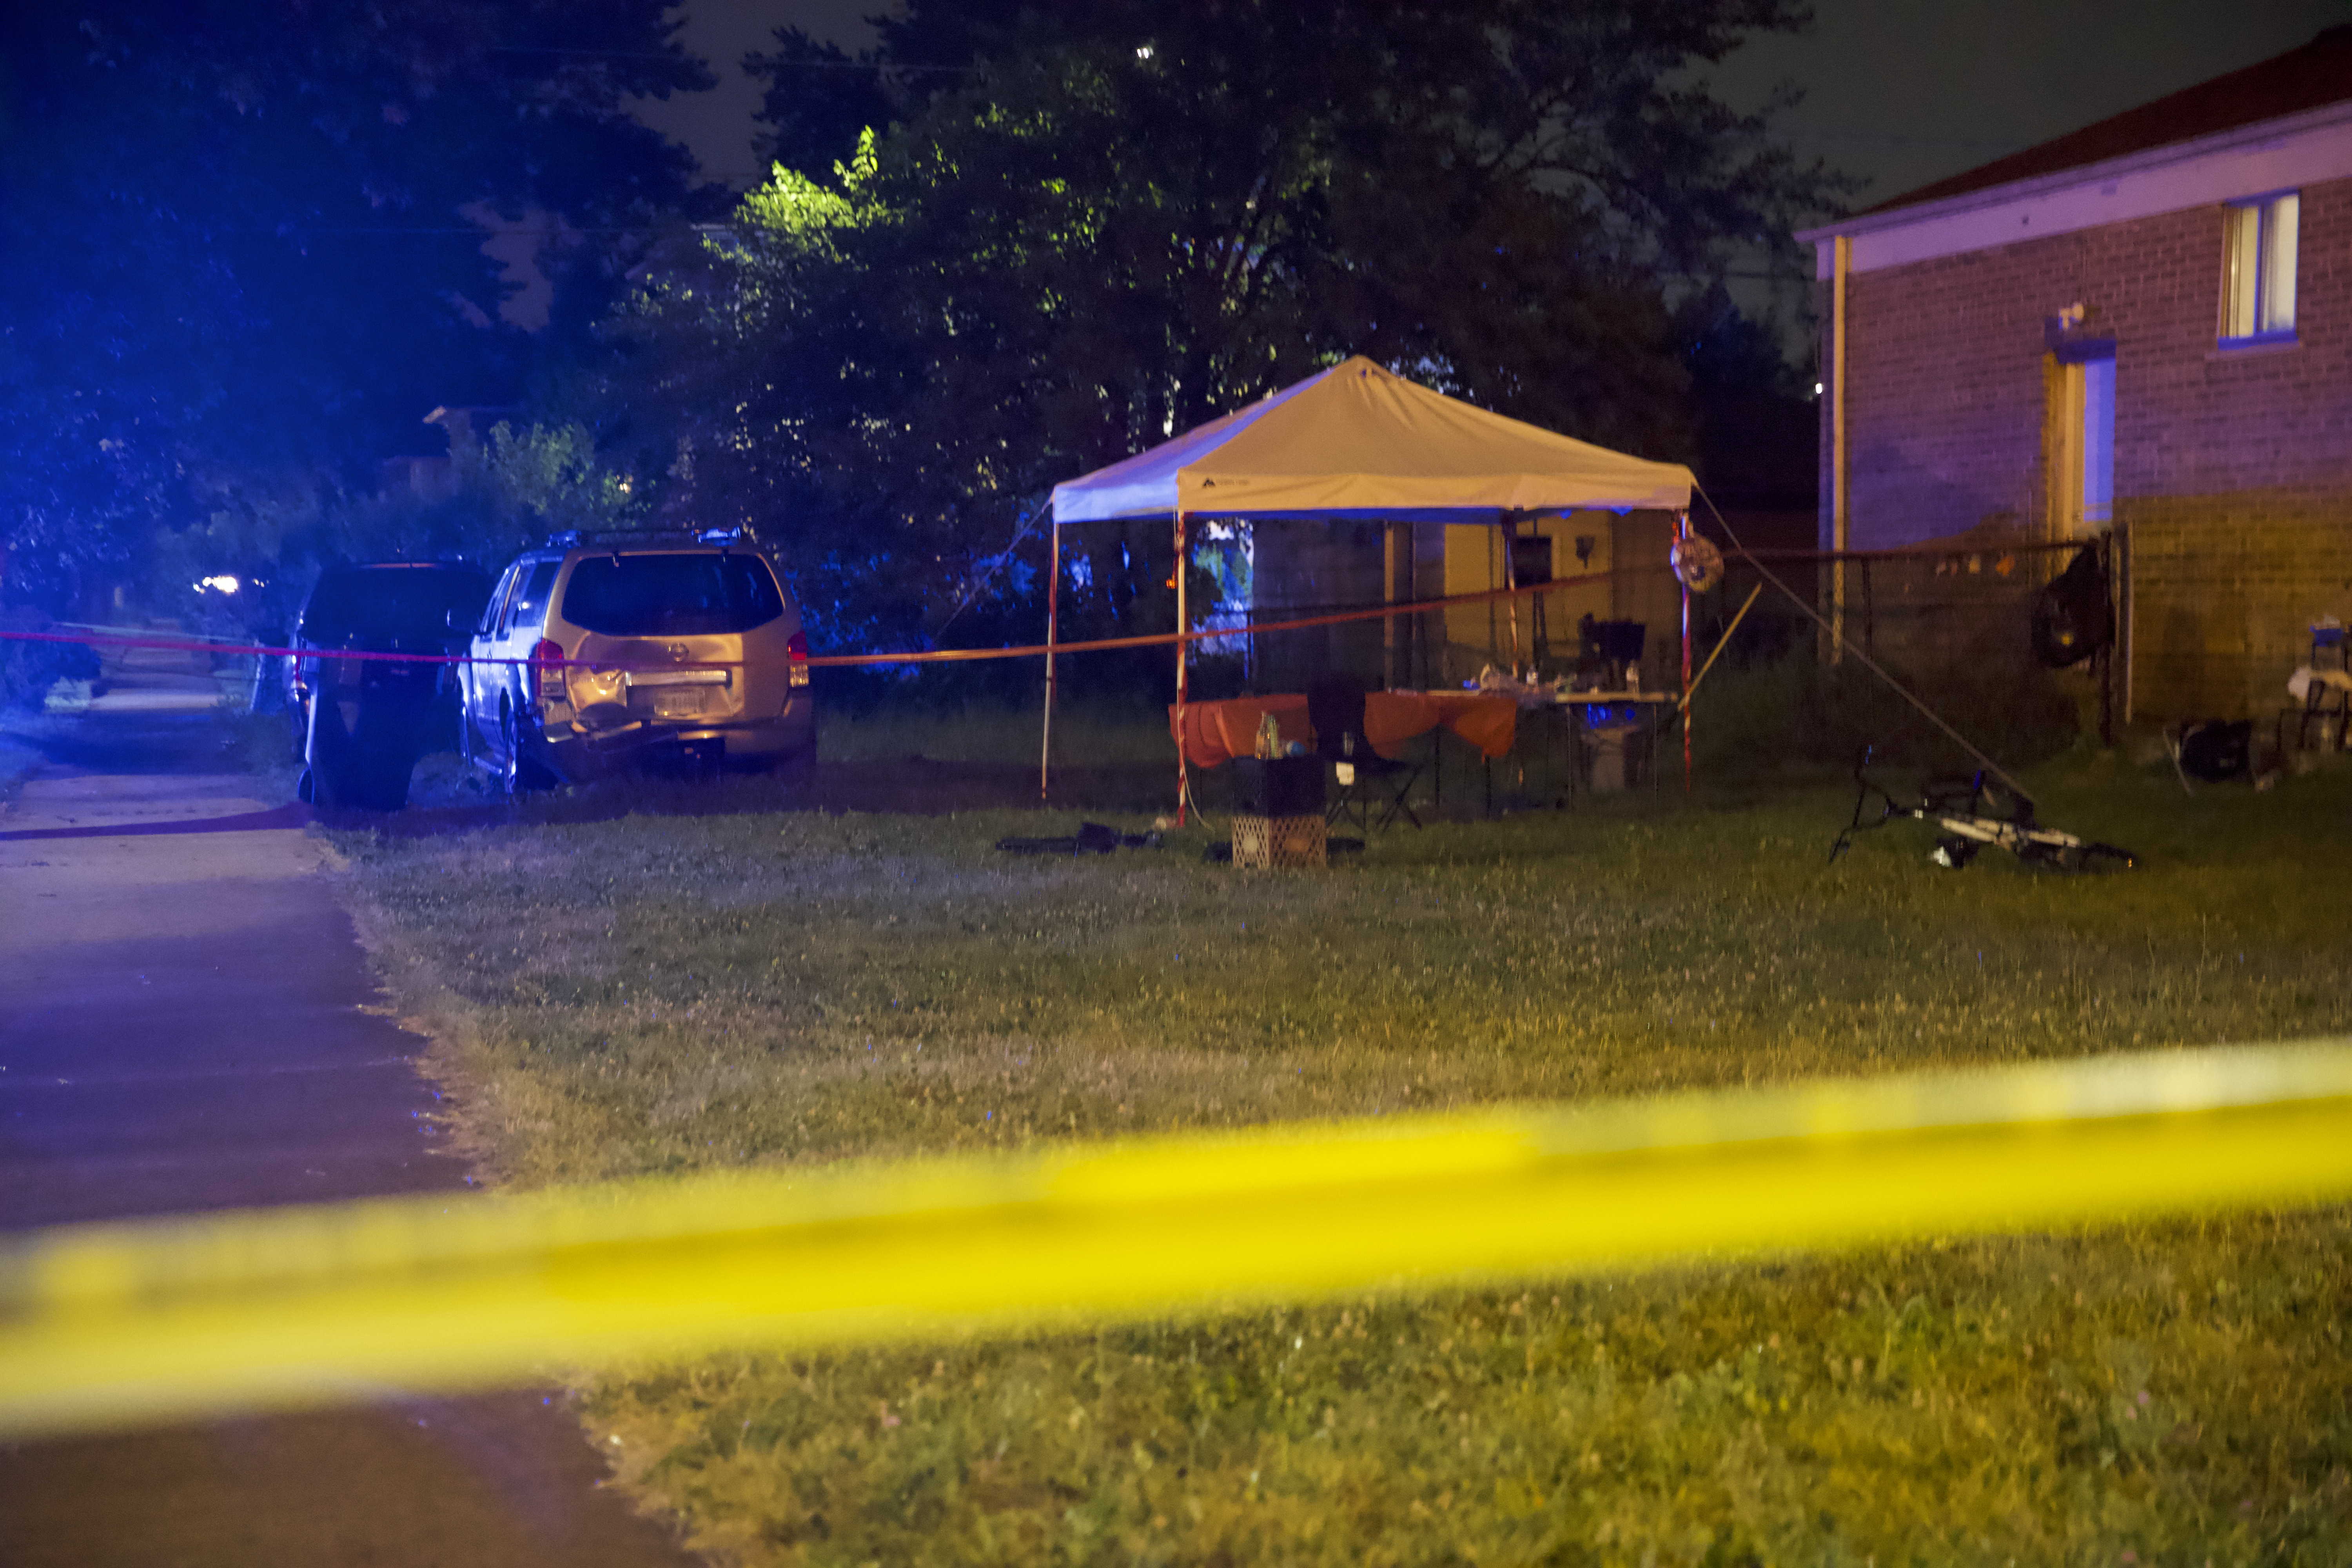 Chicago police investigate a fatal shooting July 16 in the 1000 block of West 115th Street.